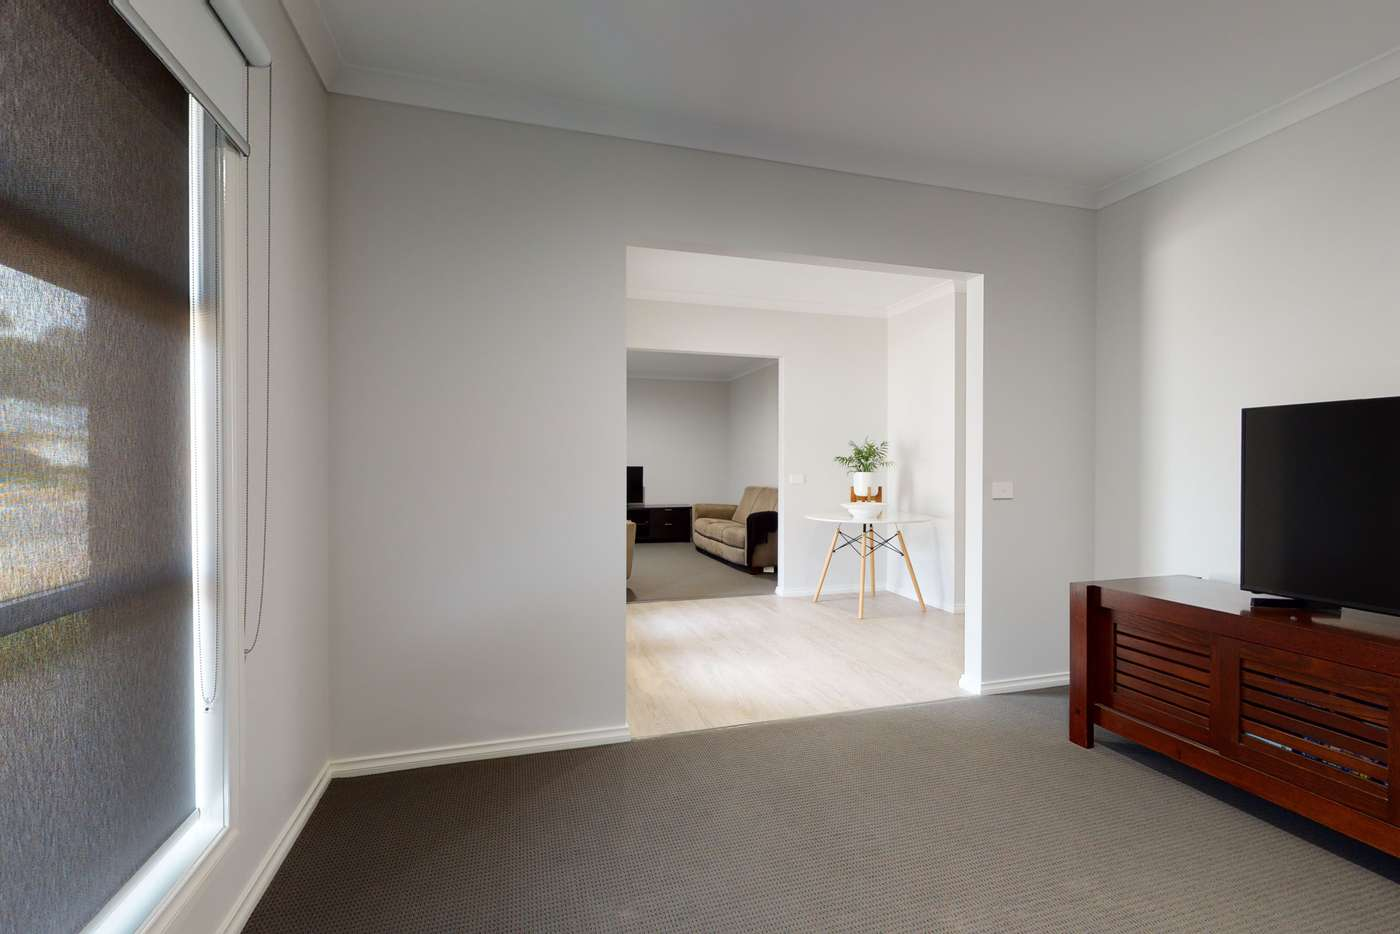 Fifth view of Homely house listing, 16 Pippin Grove, Maiden Gully VIC 3551